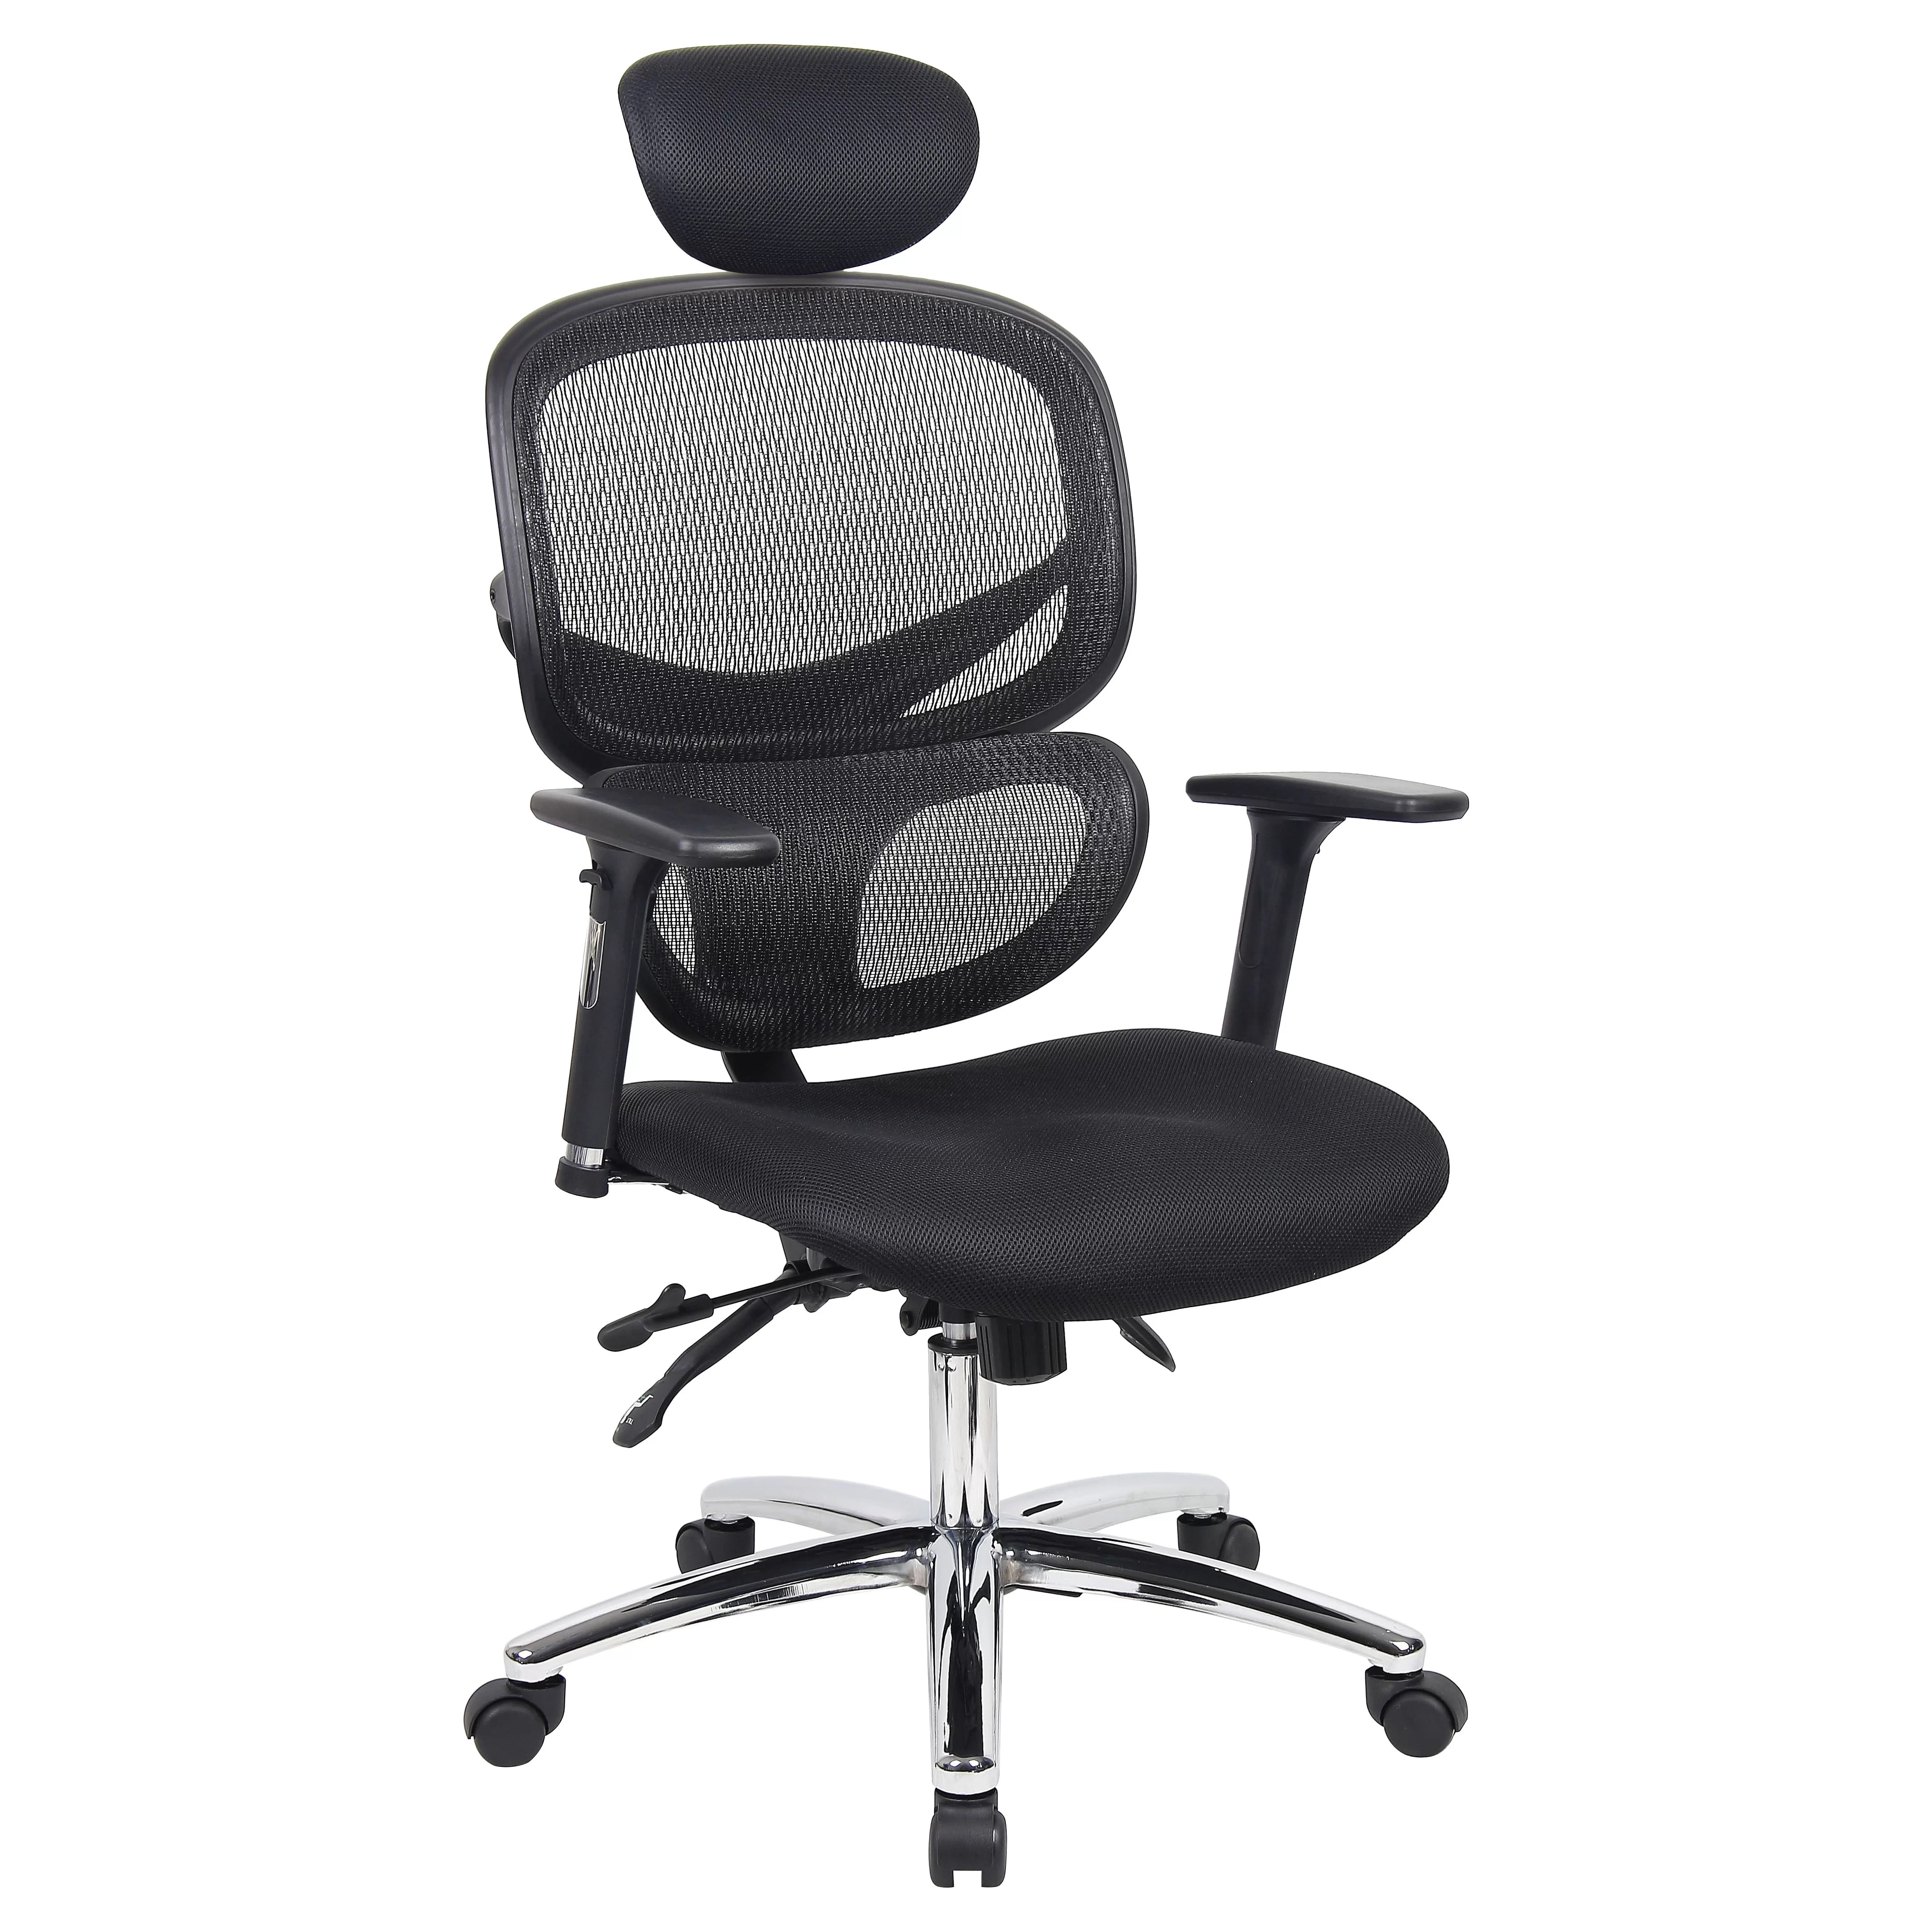 office chair lumbar support mesh game table and chairs set ergonomics 4 work wave high back executive with